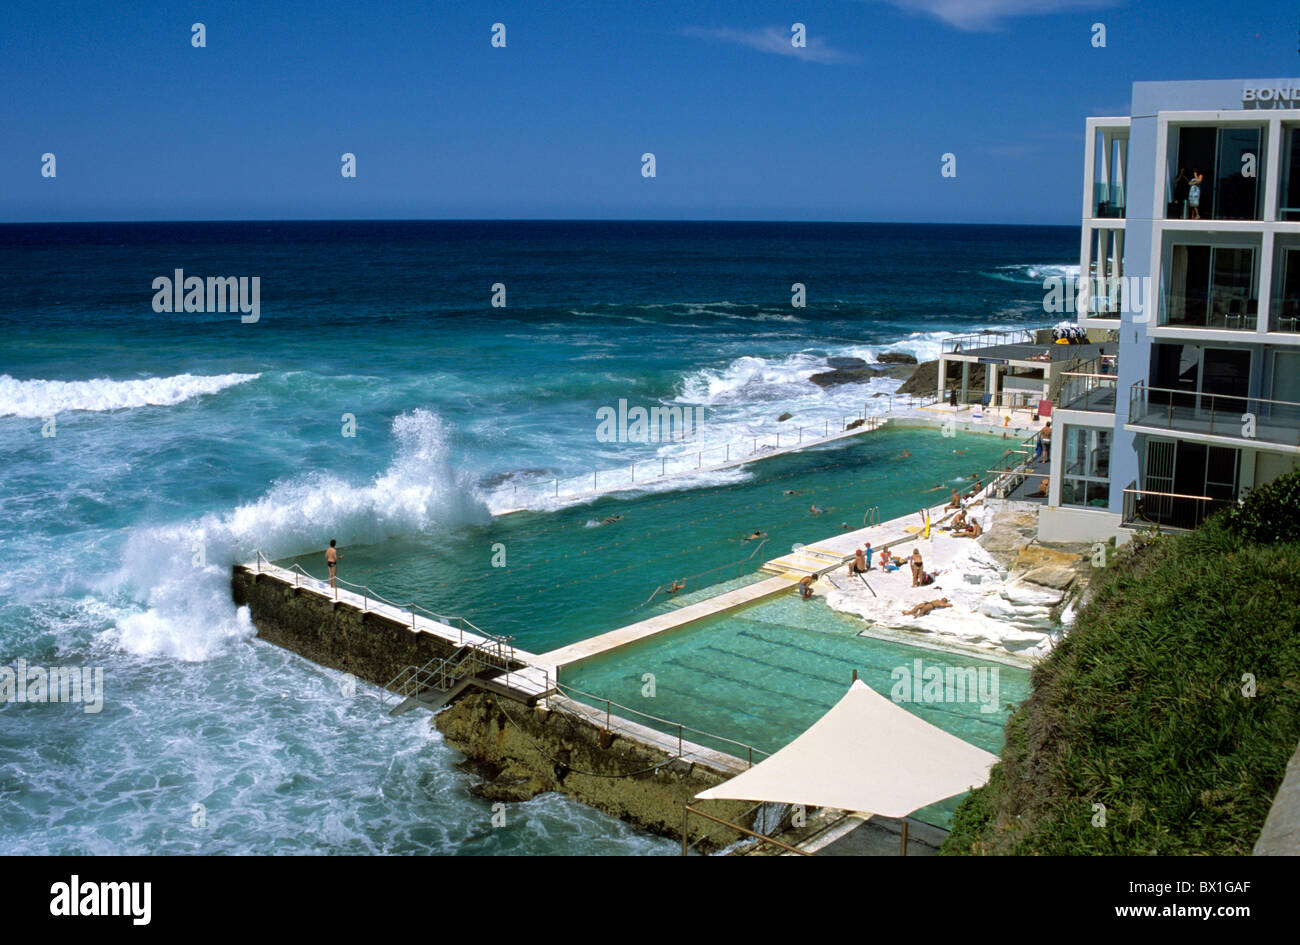 Attractive Australia Bondi Beach Bondi Icebergs Saltwater Swimming Pool Coast Hotel  New South Wales Sea Sydney Tourism